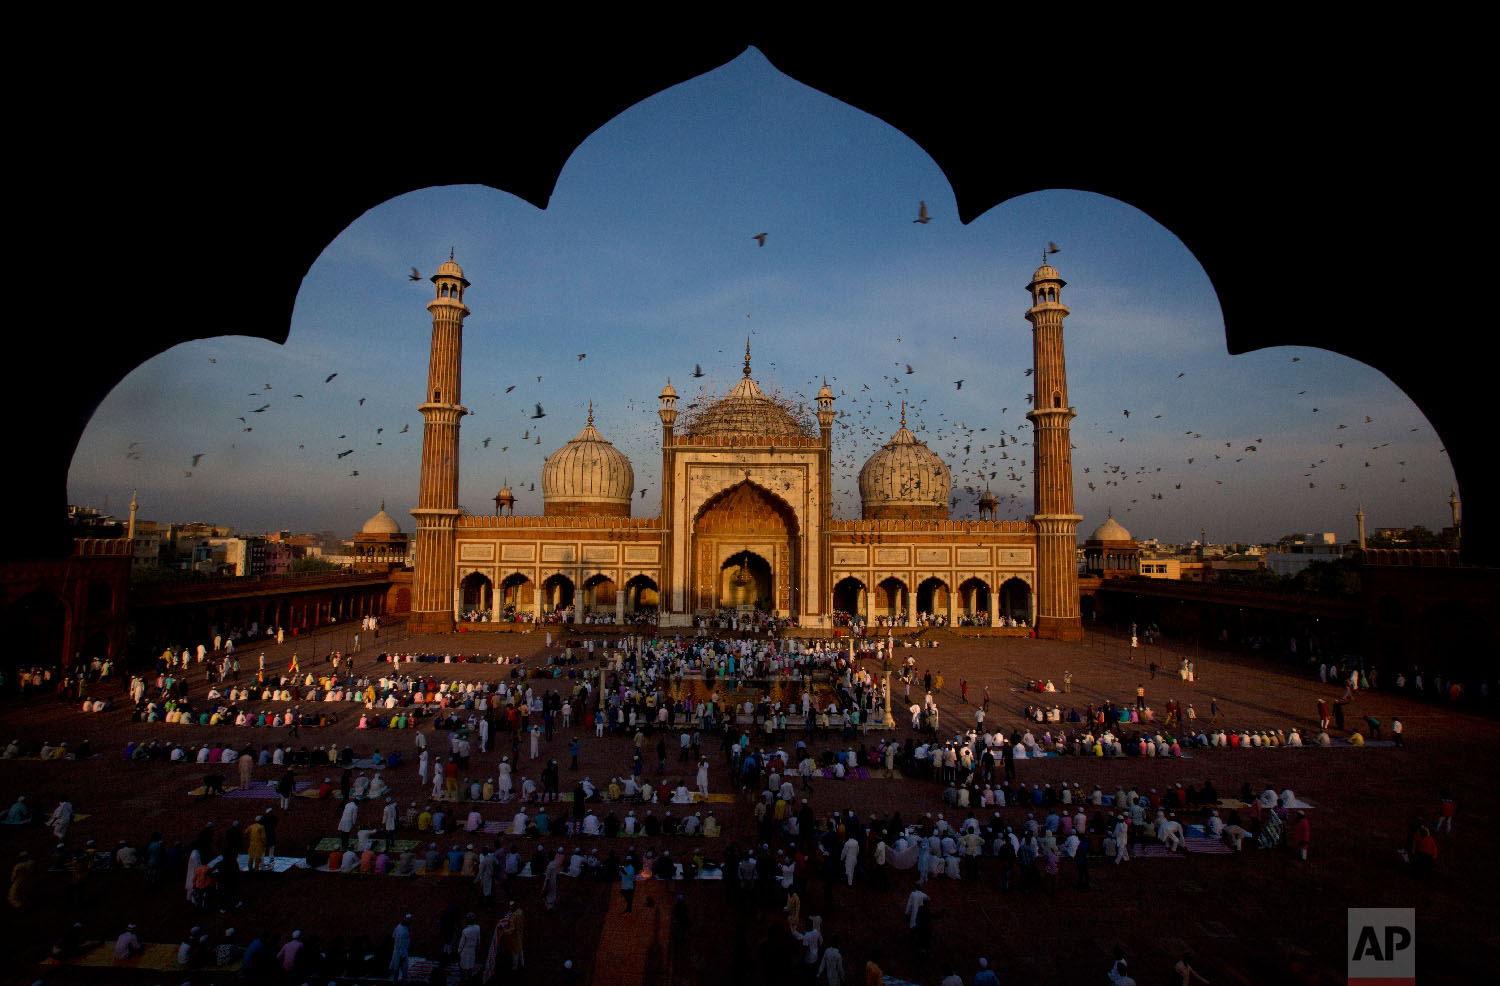 Pigeons fly past as Muslims gather to offer Eid al-Adha prayers at Jama Masjid in New Delhi, India, on Aug. 22, 2018. (AP Photo/Manish Swarup)